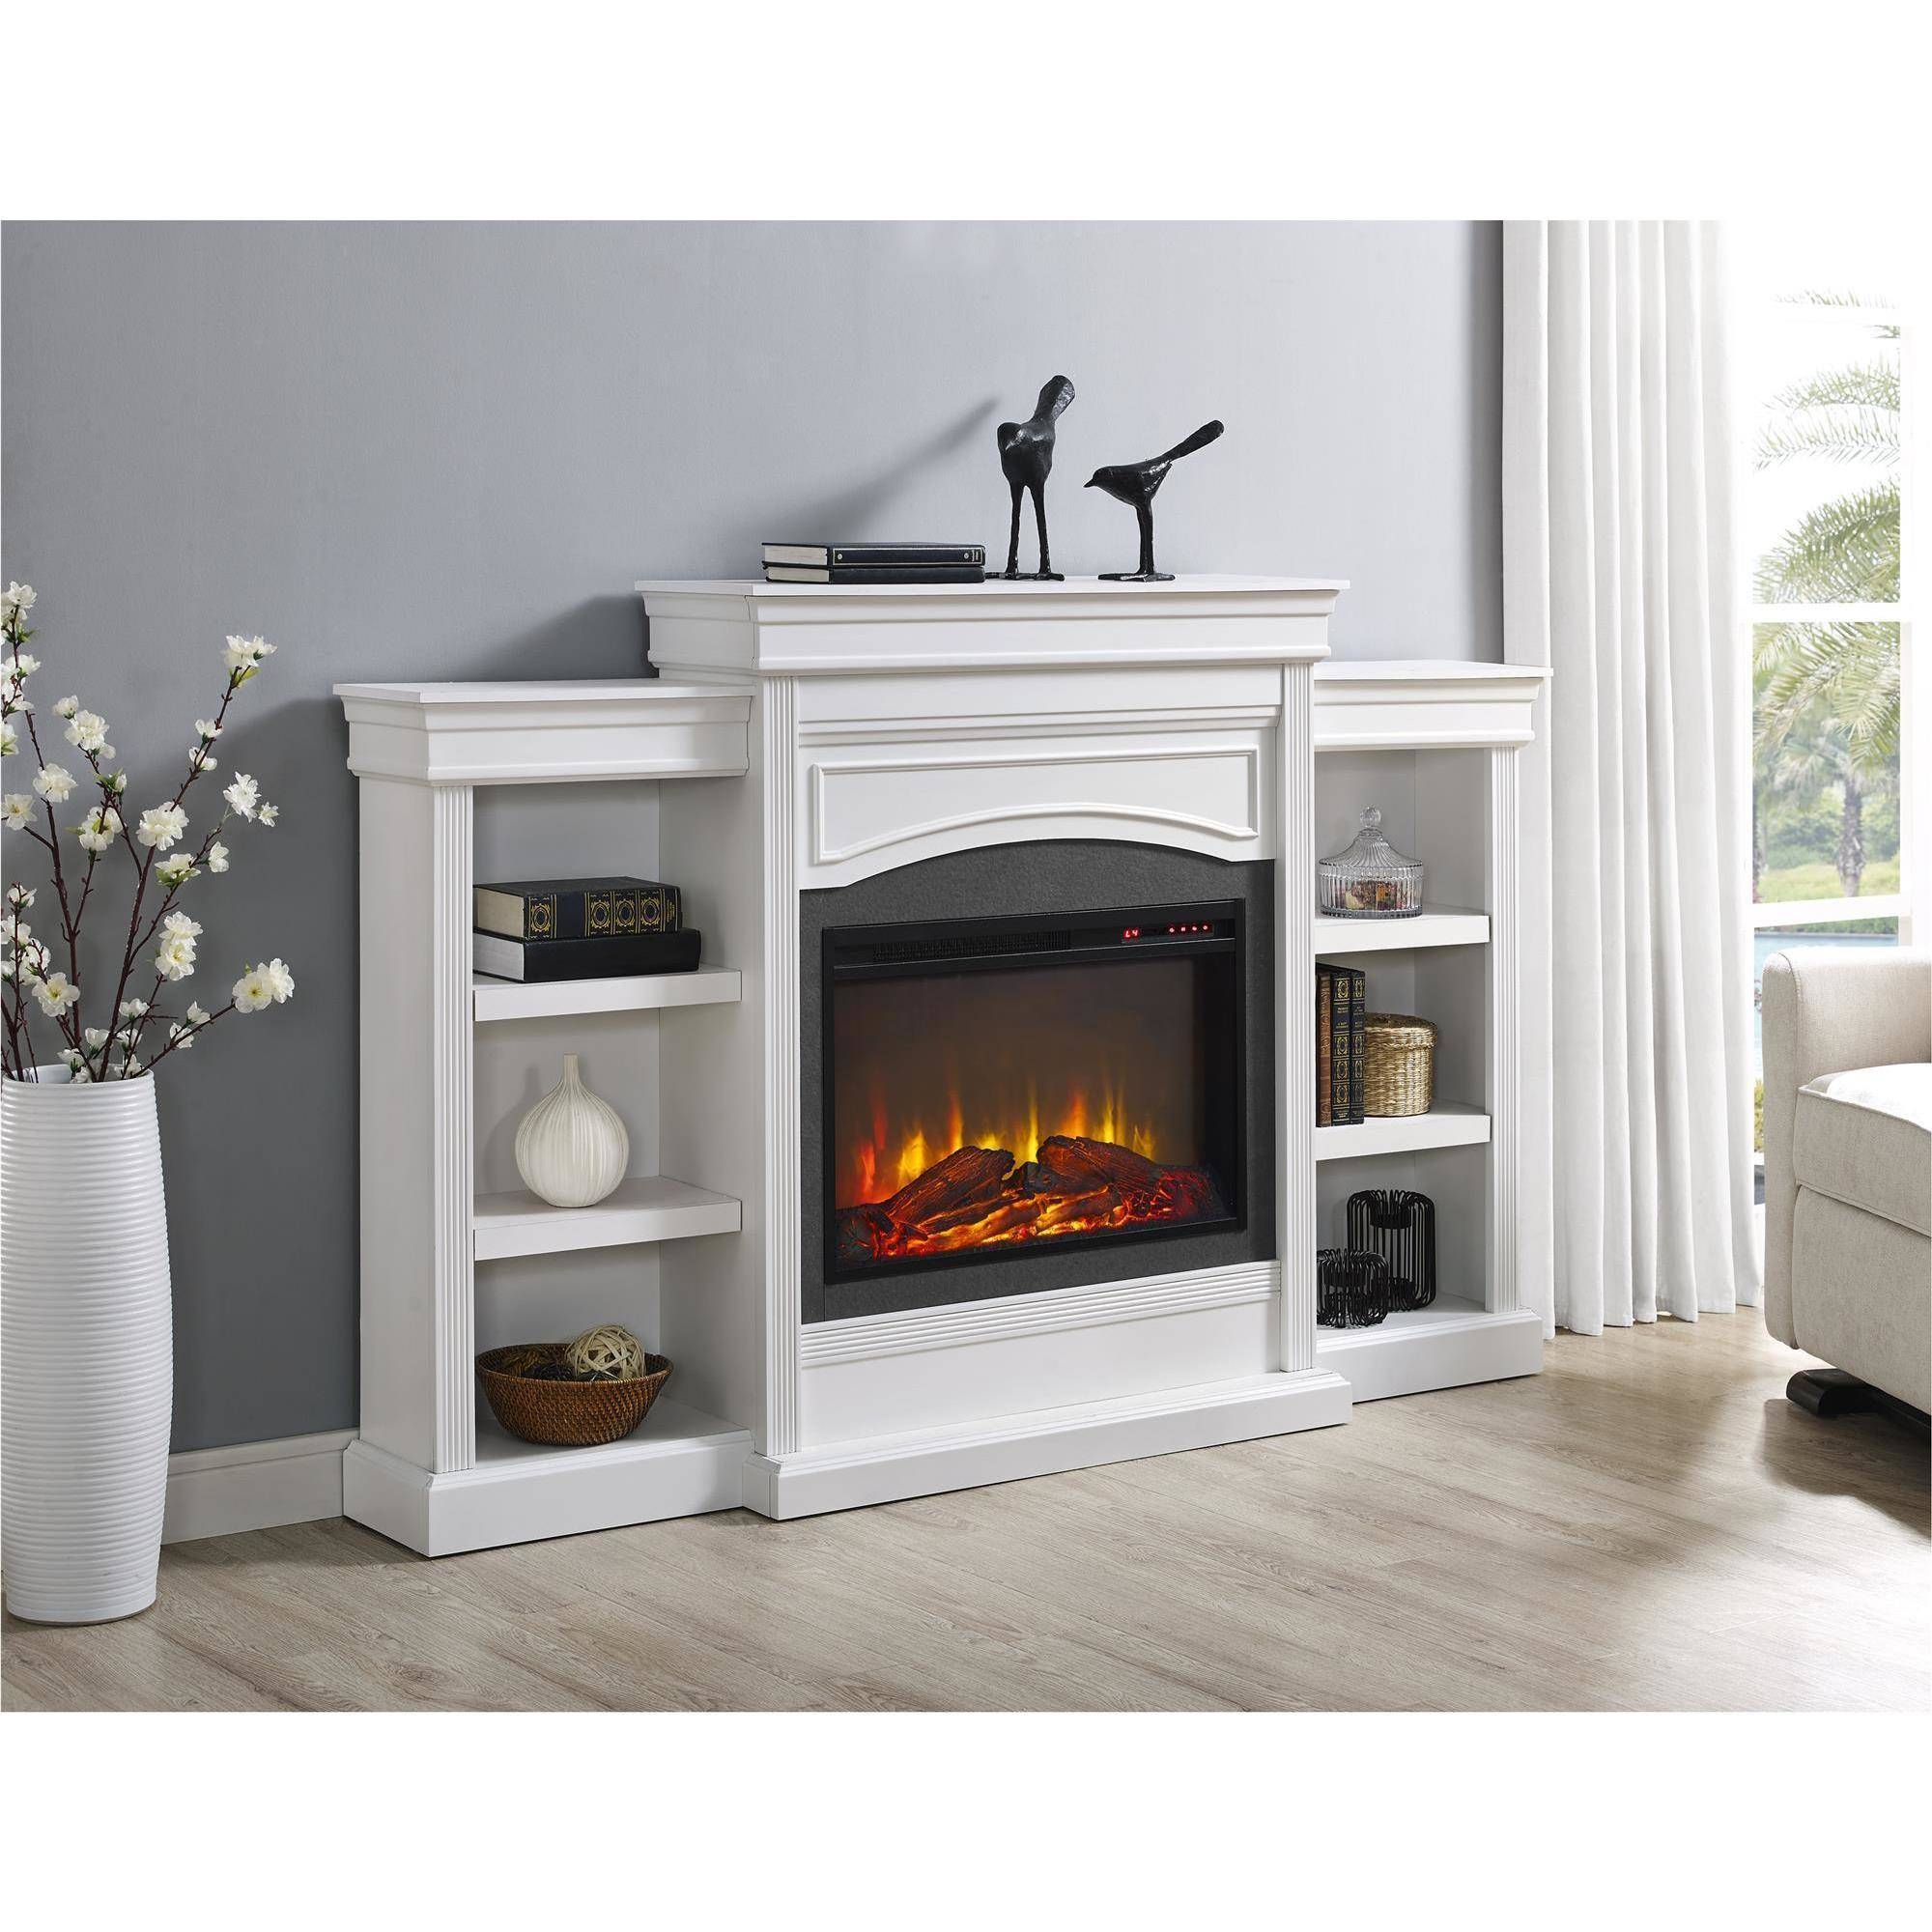 Ameriwood Home Lamont Mantel Fireplace, White